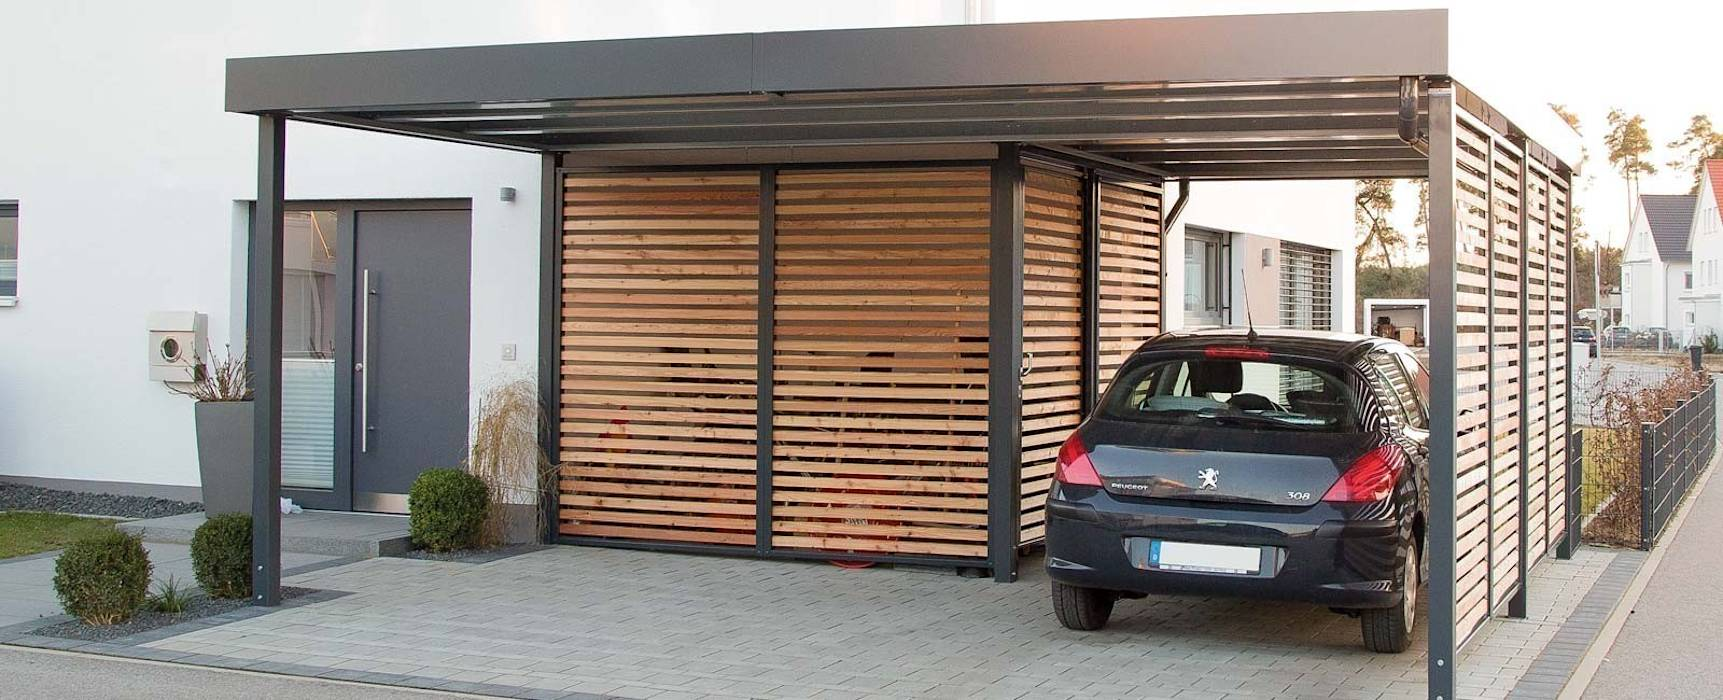 moderne garage schuppen bilder carport mit integriertem. Black Bedroom Furniture Sets. Home Design Ideas